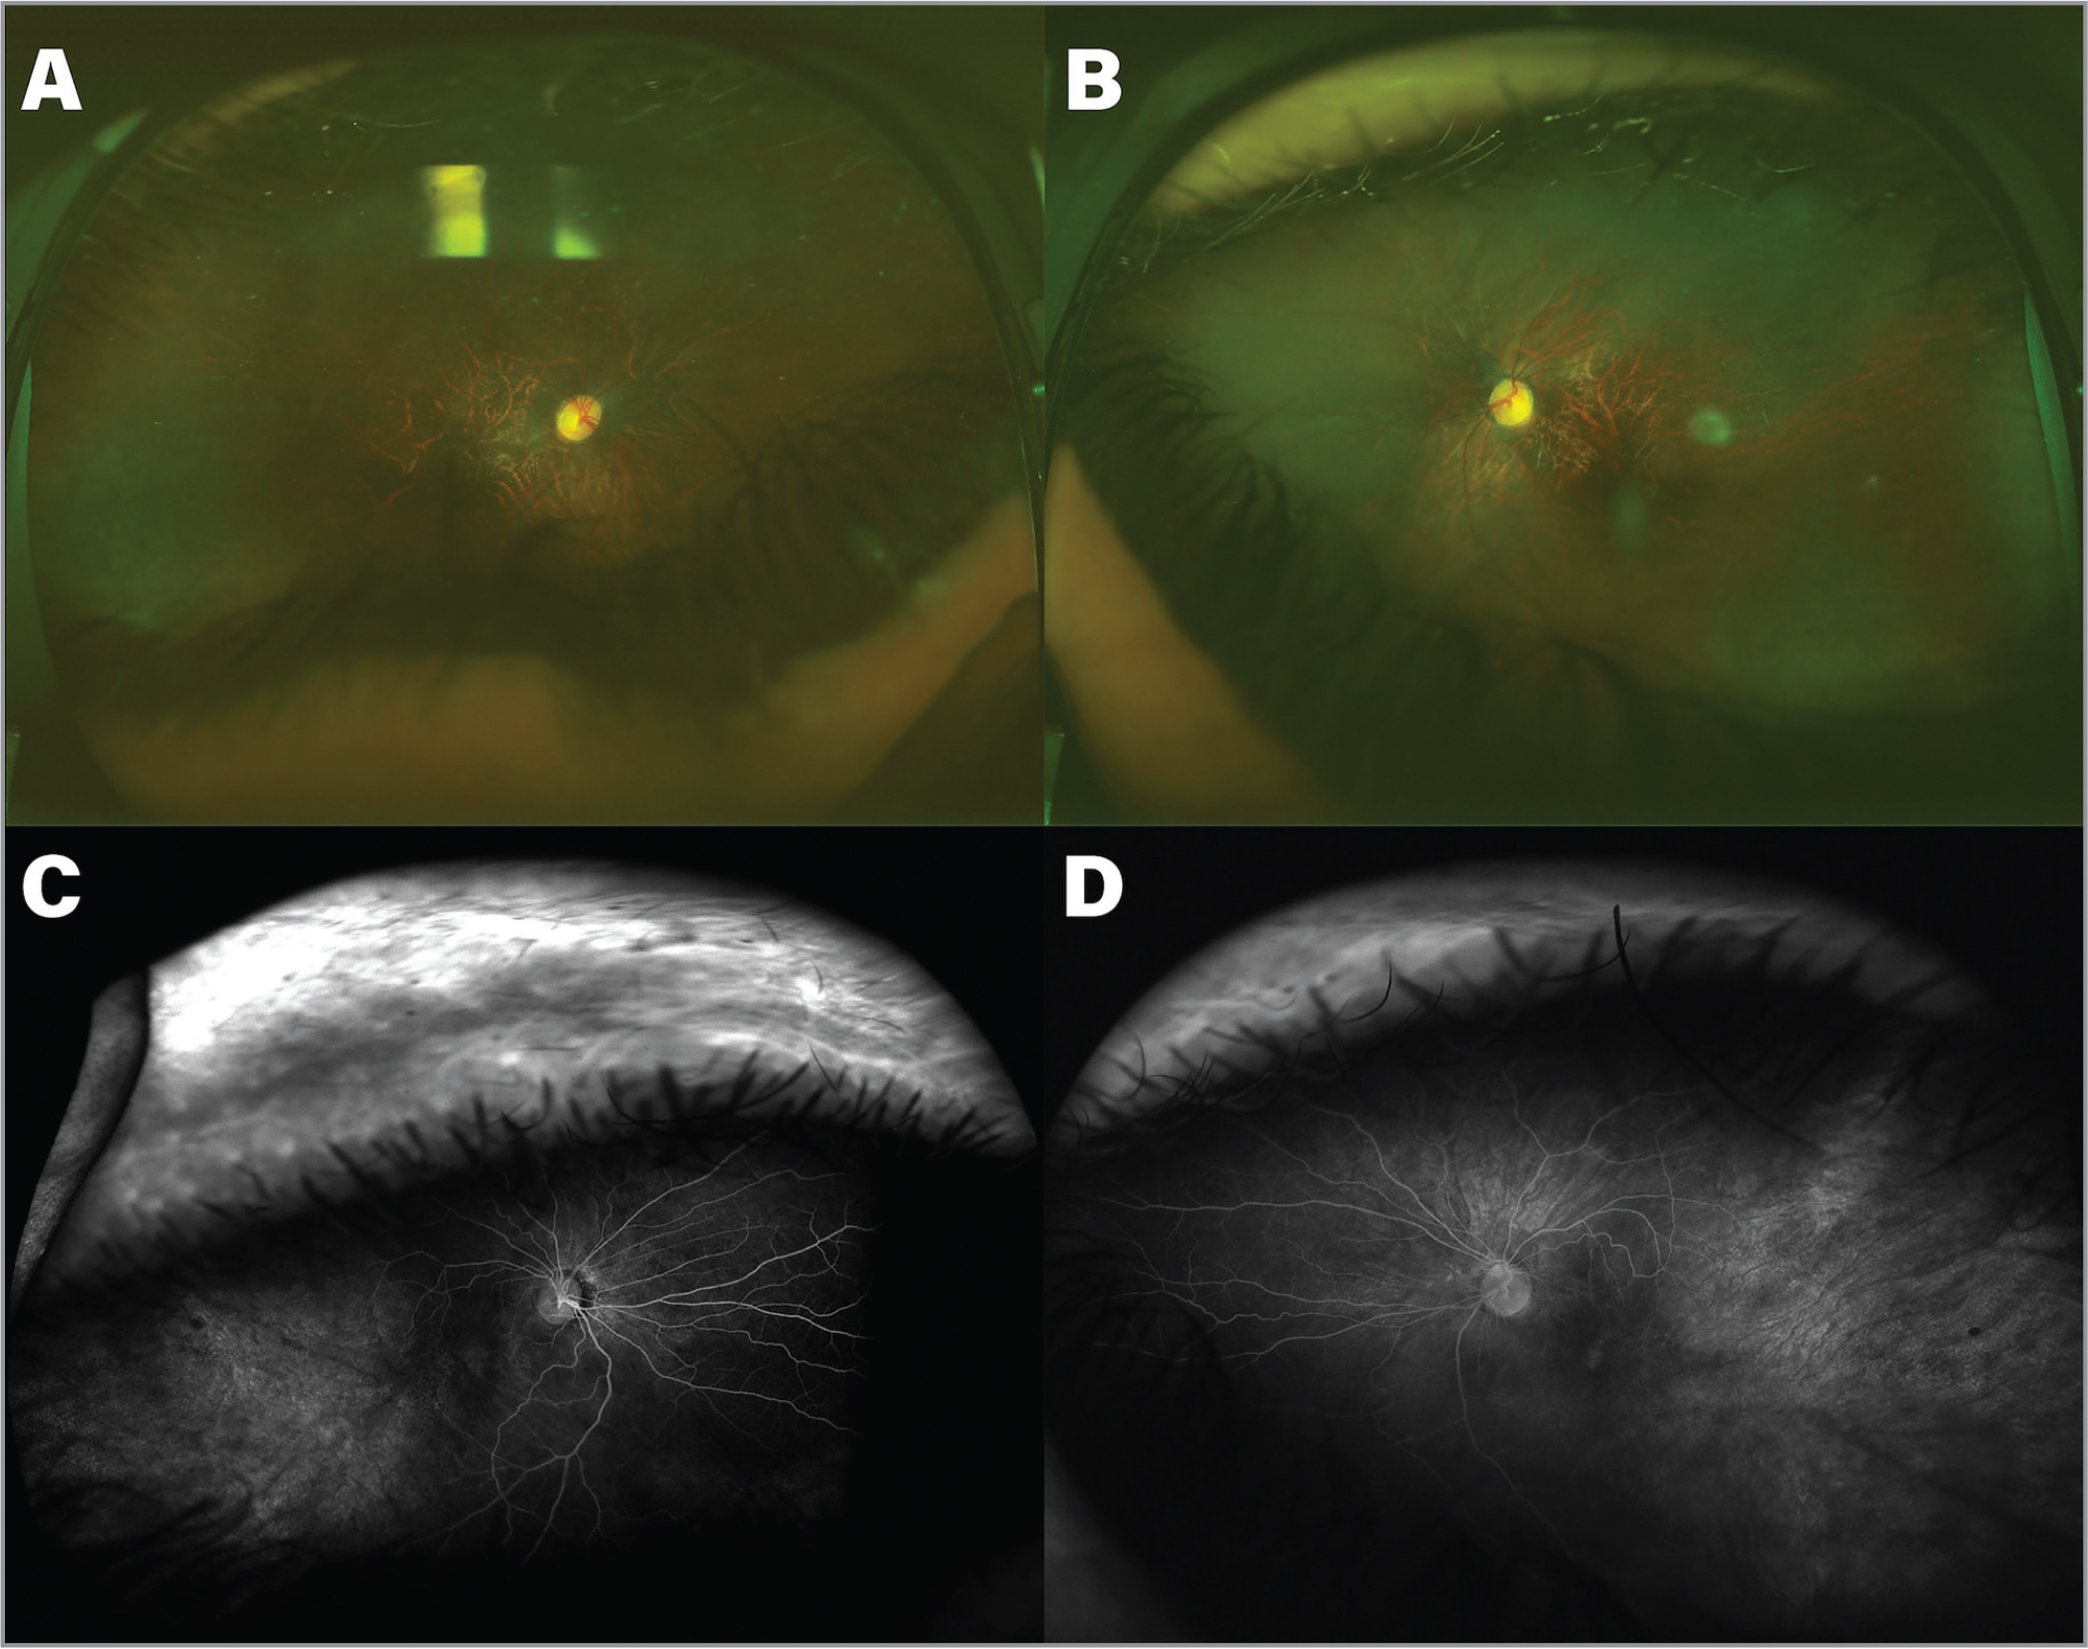 Retinal features of a 6-year-old male (Patient 2) with Pierson syndrome. (A, B) Fundus photos of the right and left eyes showing a tessellated fundus, optic disc changes similar to Patient 1, avascular peripheral retina, aberrant course of temporal arcades, and straightening of nasal retinal vessels. (C, D) Fluorescein angiography of both eyes showing, in addition to the vascular changes described clinically, the ischemic peripheral retinal changes.